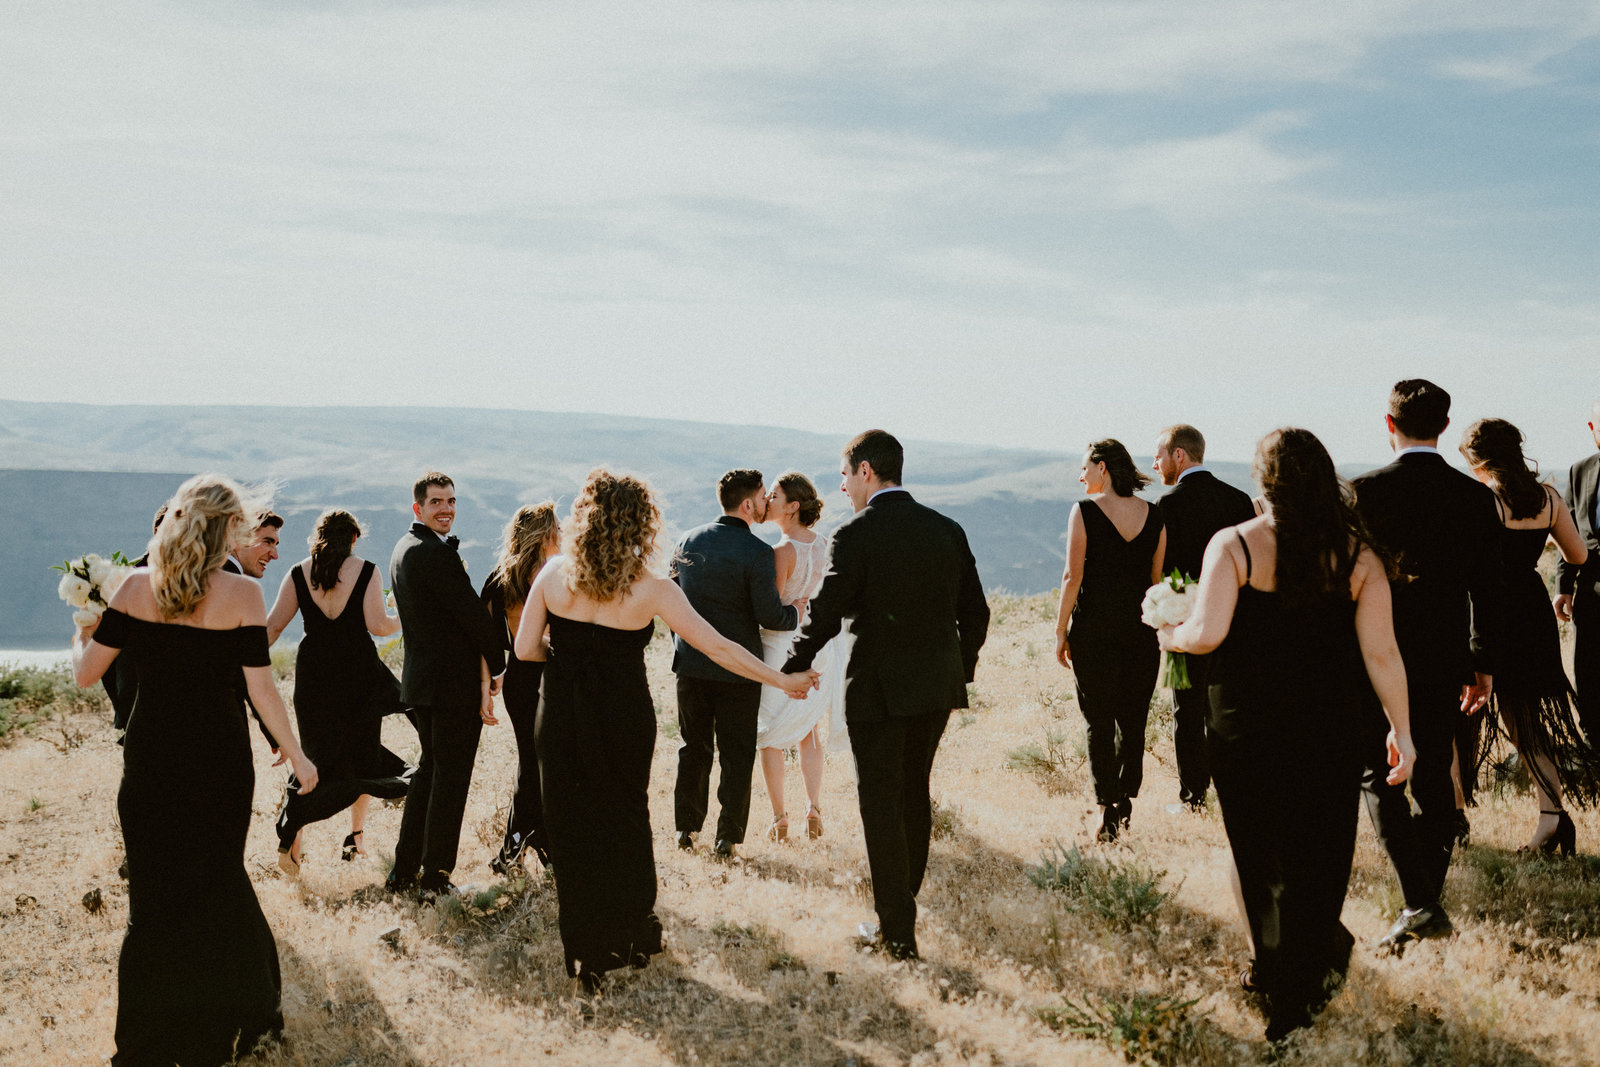 cave-b-inn-washington-seattle-wedding-justine-jeff-chelsea-abril-photography-503